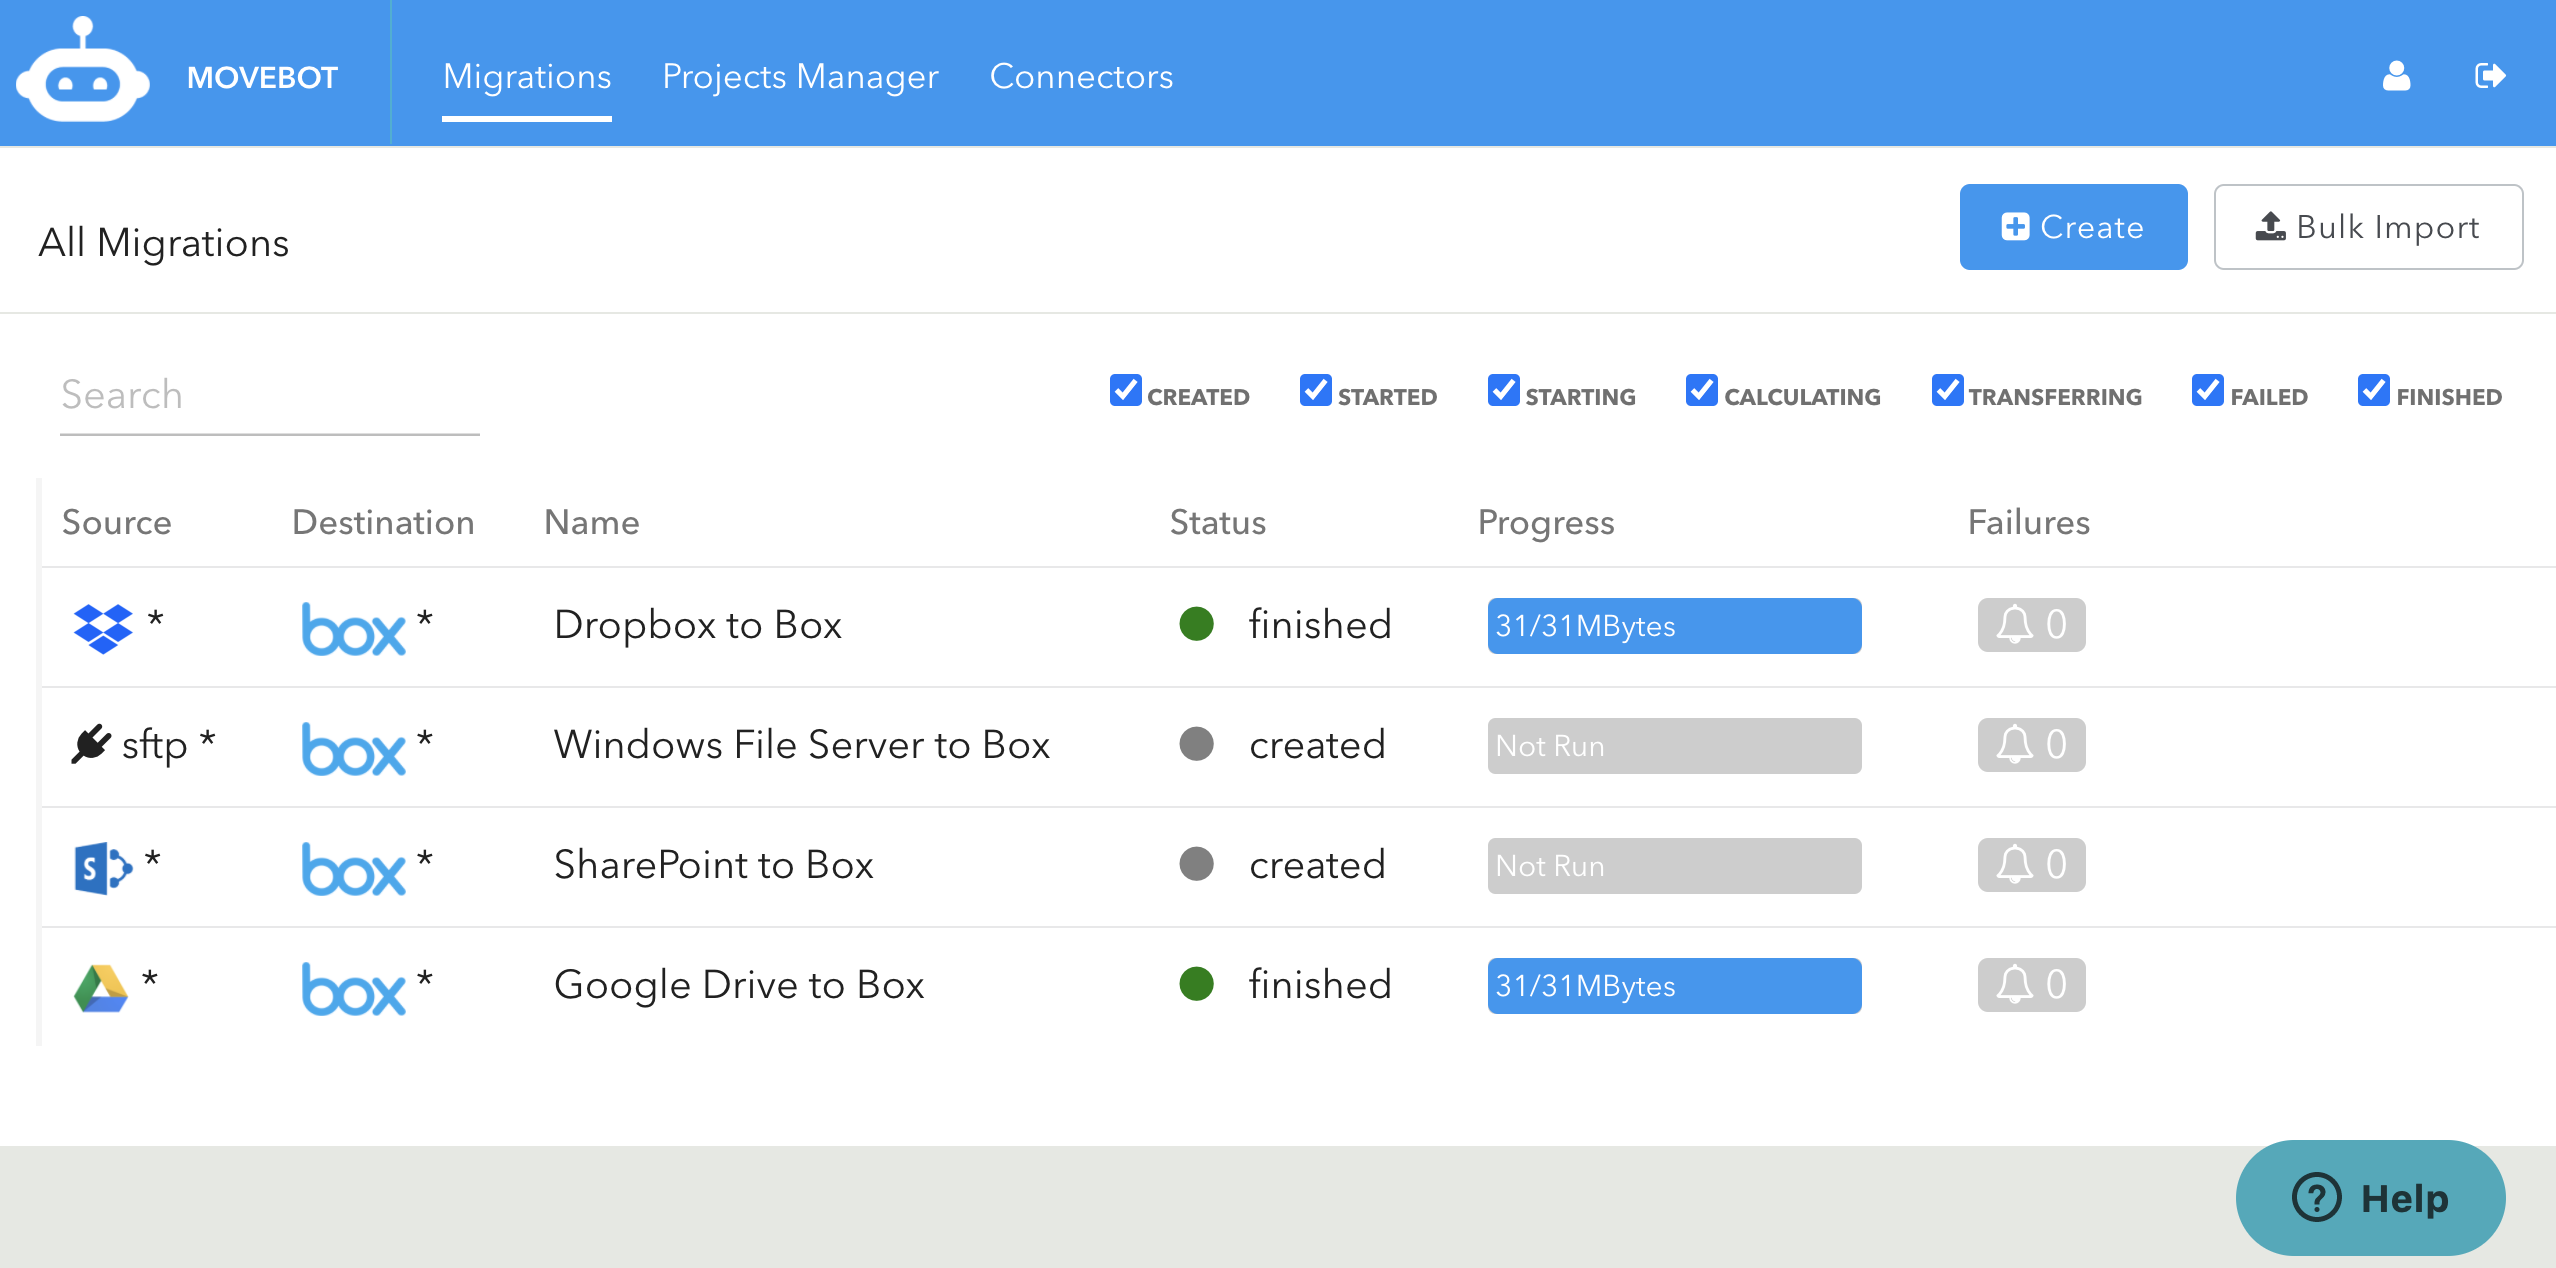 Migrations to Box